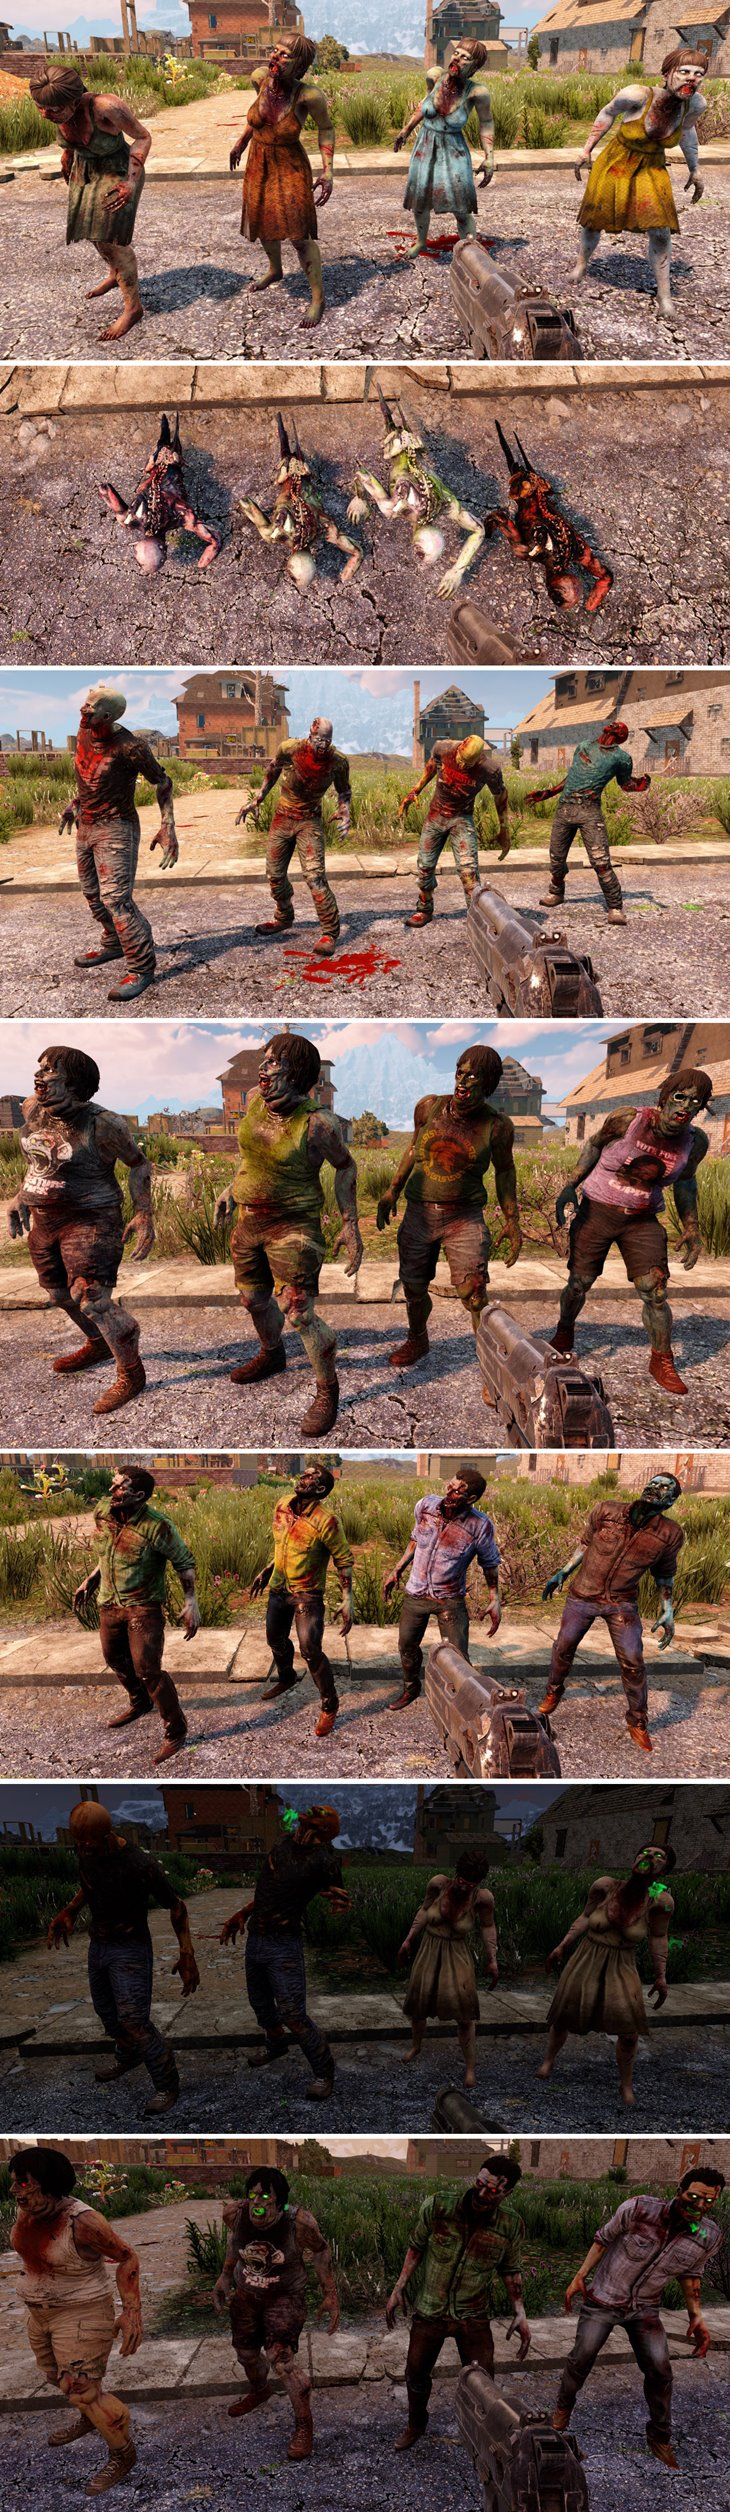 7 days to die new zombie textures by mumpfy additional screenshot